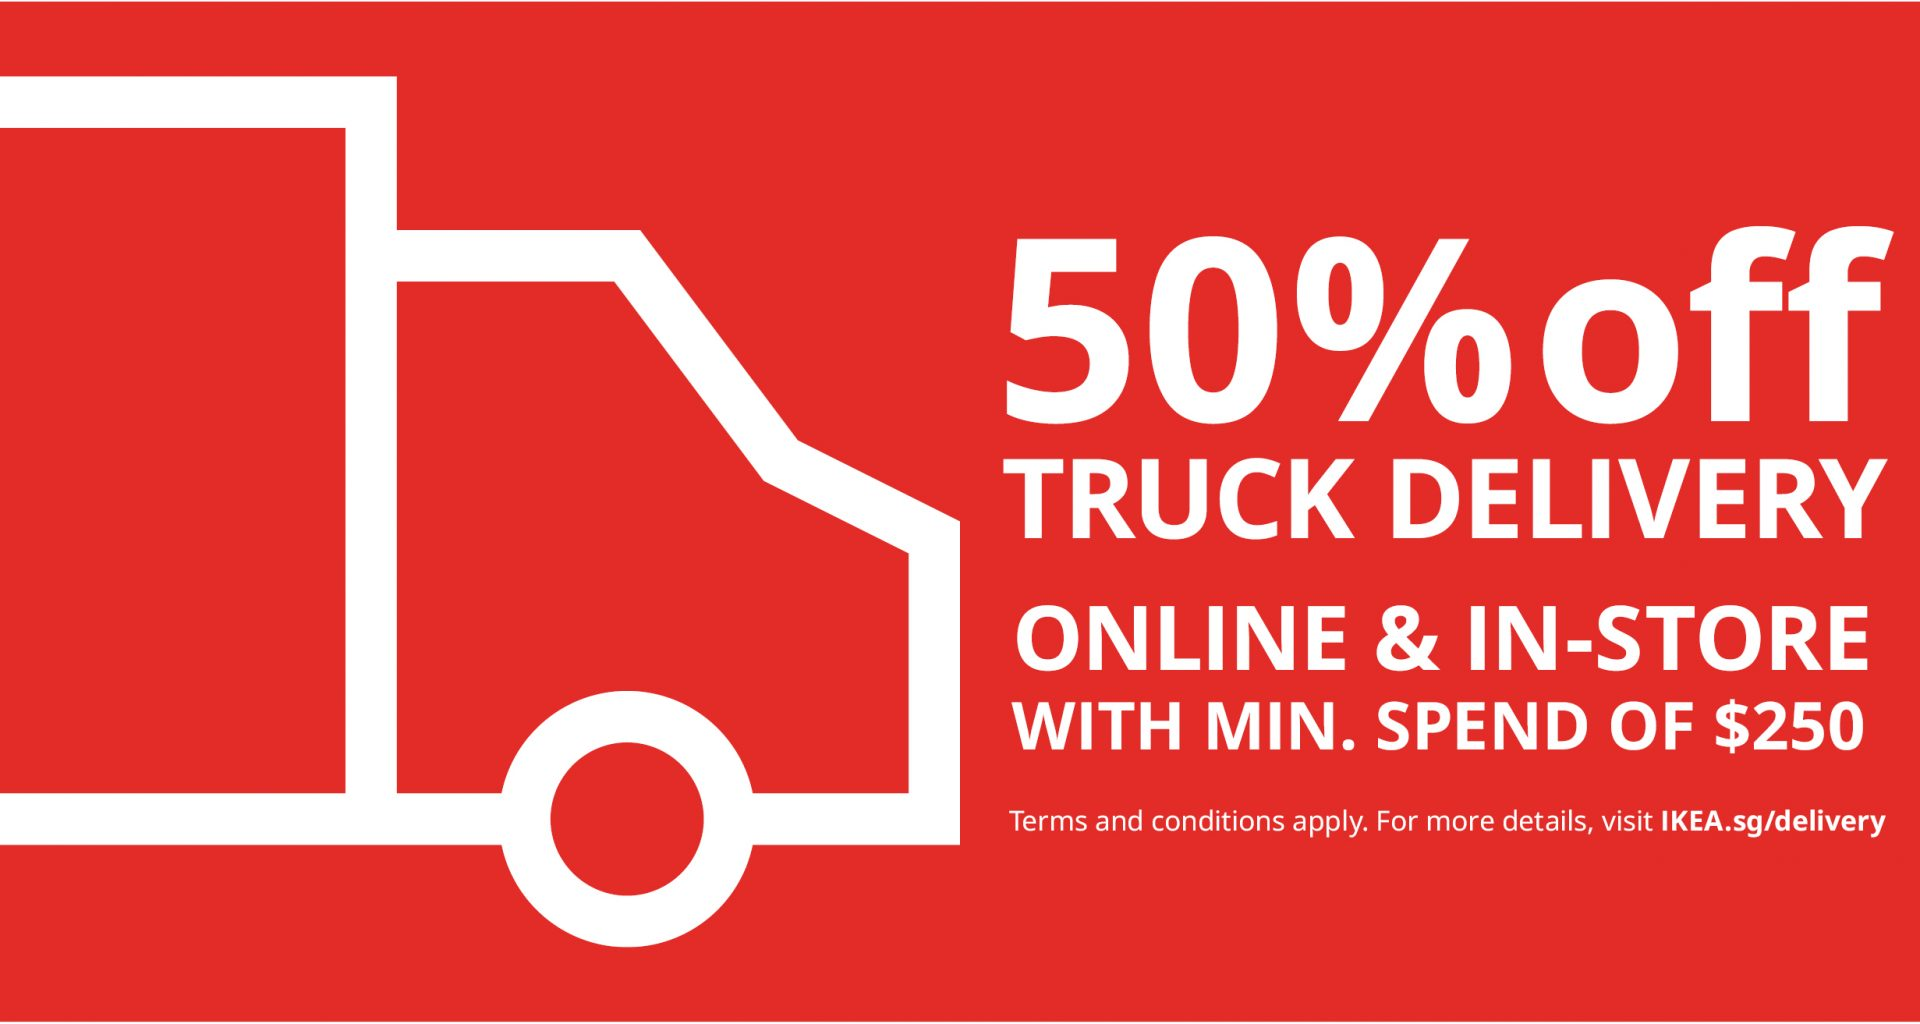 [PROMO CODE INSIDE] Enjoy 50% OFF truck delivery cost at IKEA with a minimum spend of $250 - Alvinology